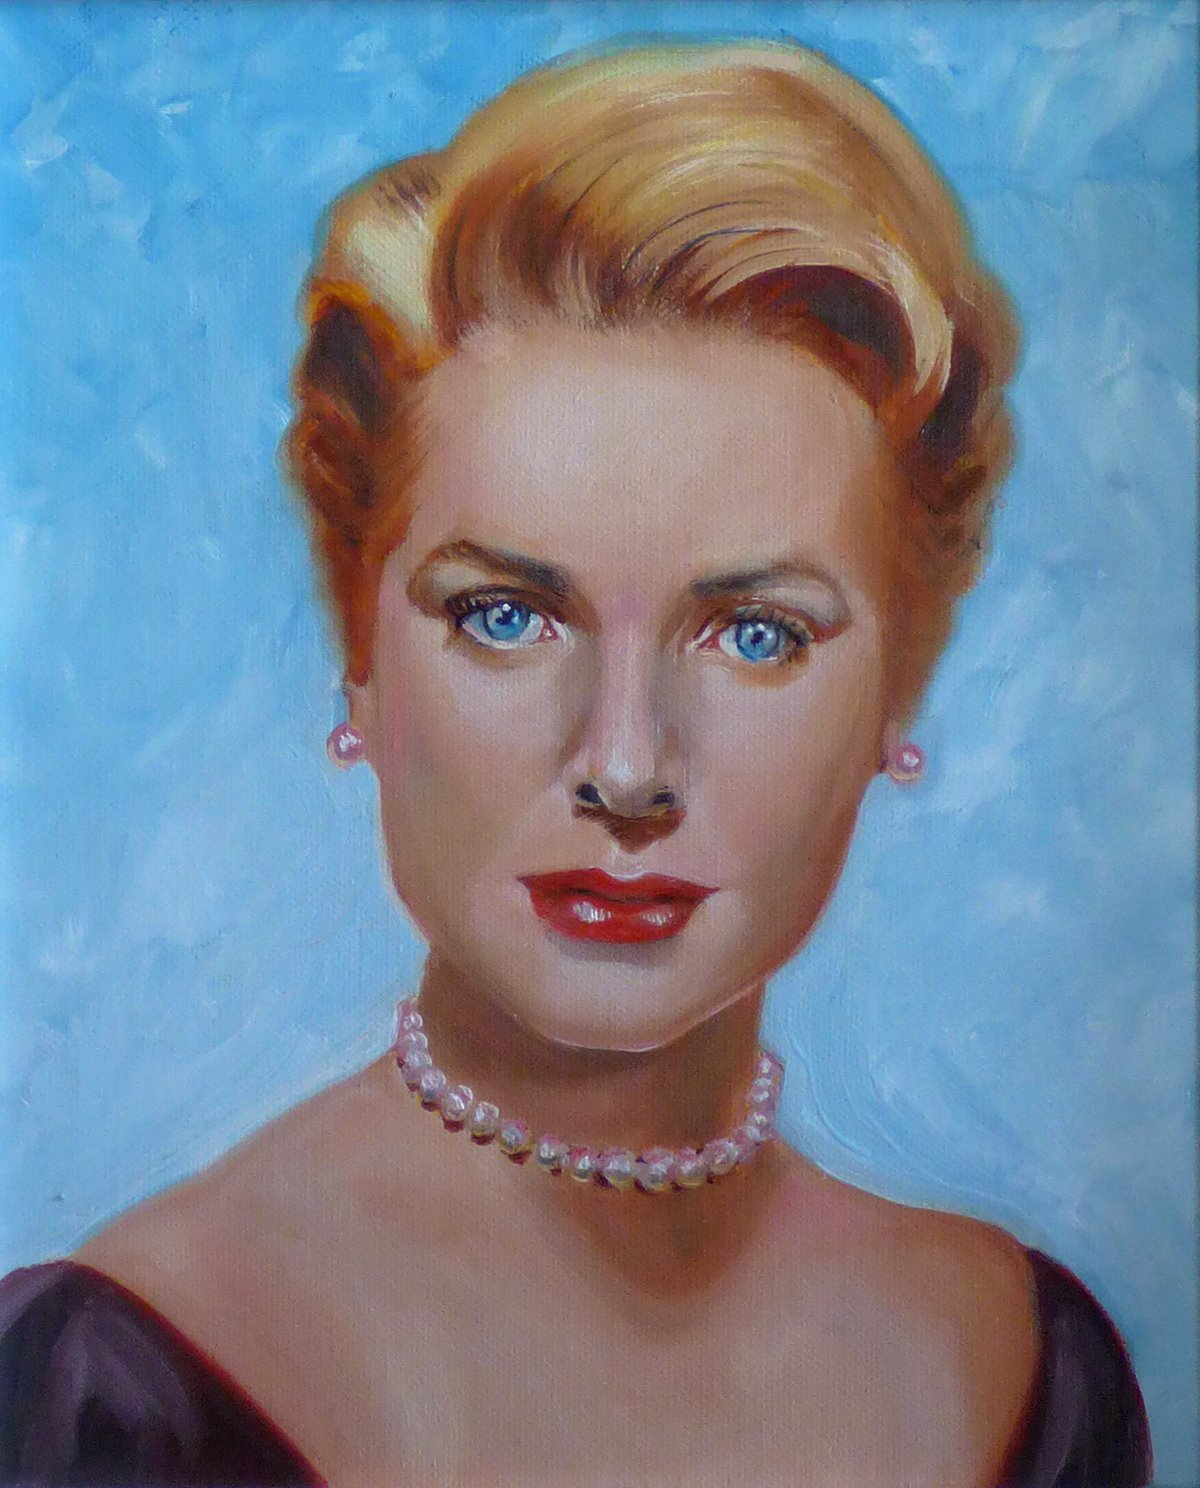 Grace Kelly - Framed Oil Painting on Canvas, Original & Unique Art from Ireland